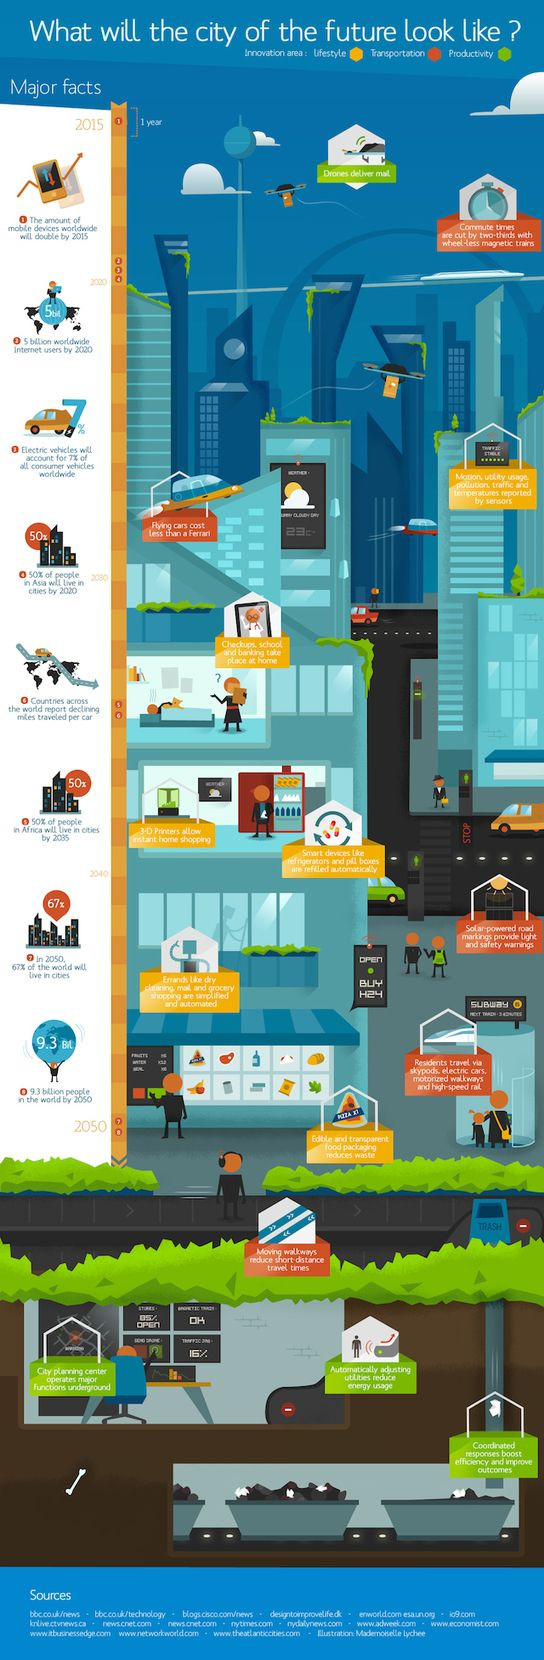 Infographic: Imagining the city of the future - Tech Page One